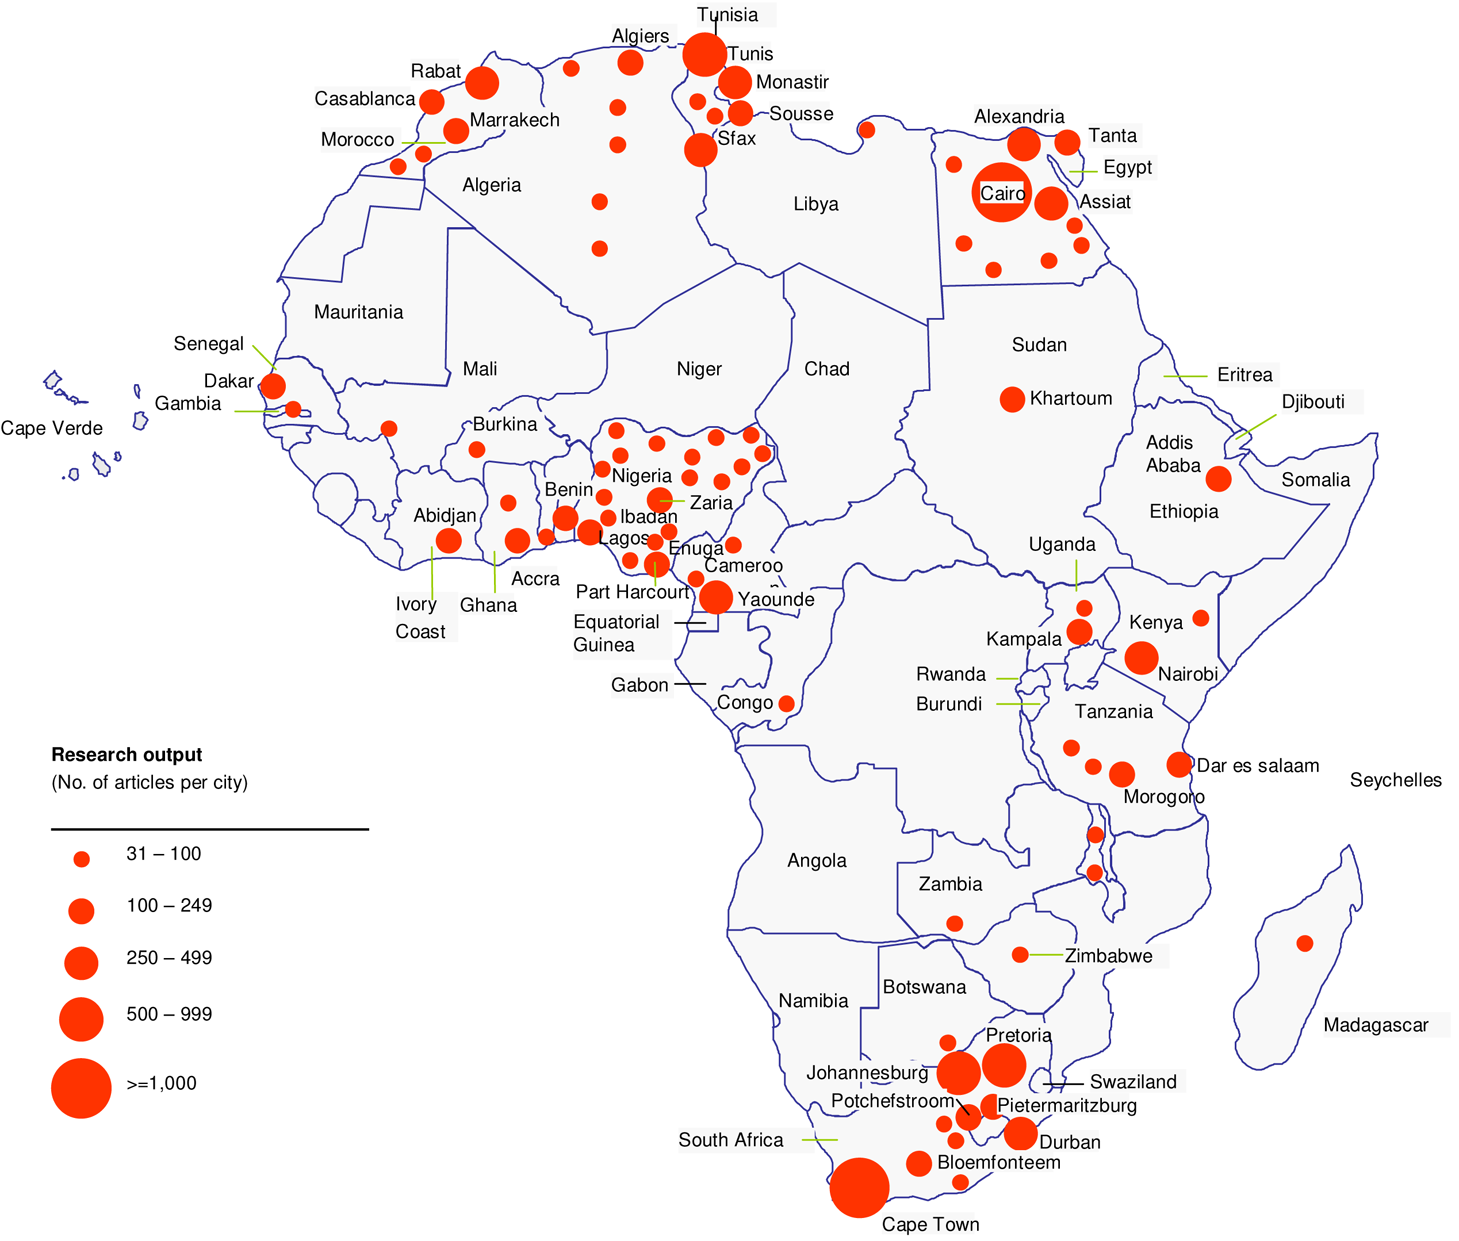 Distribution of R&D capacity in Africa.